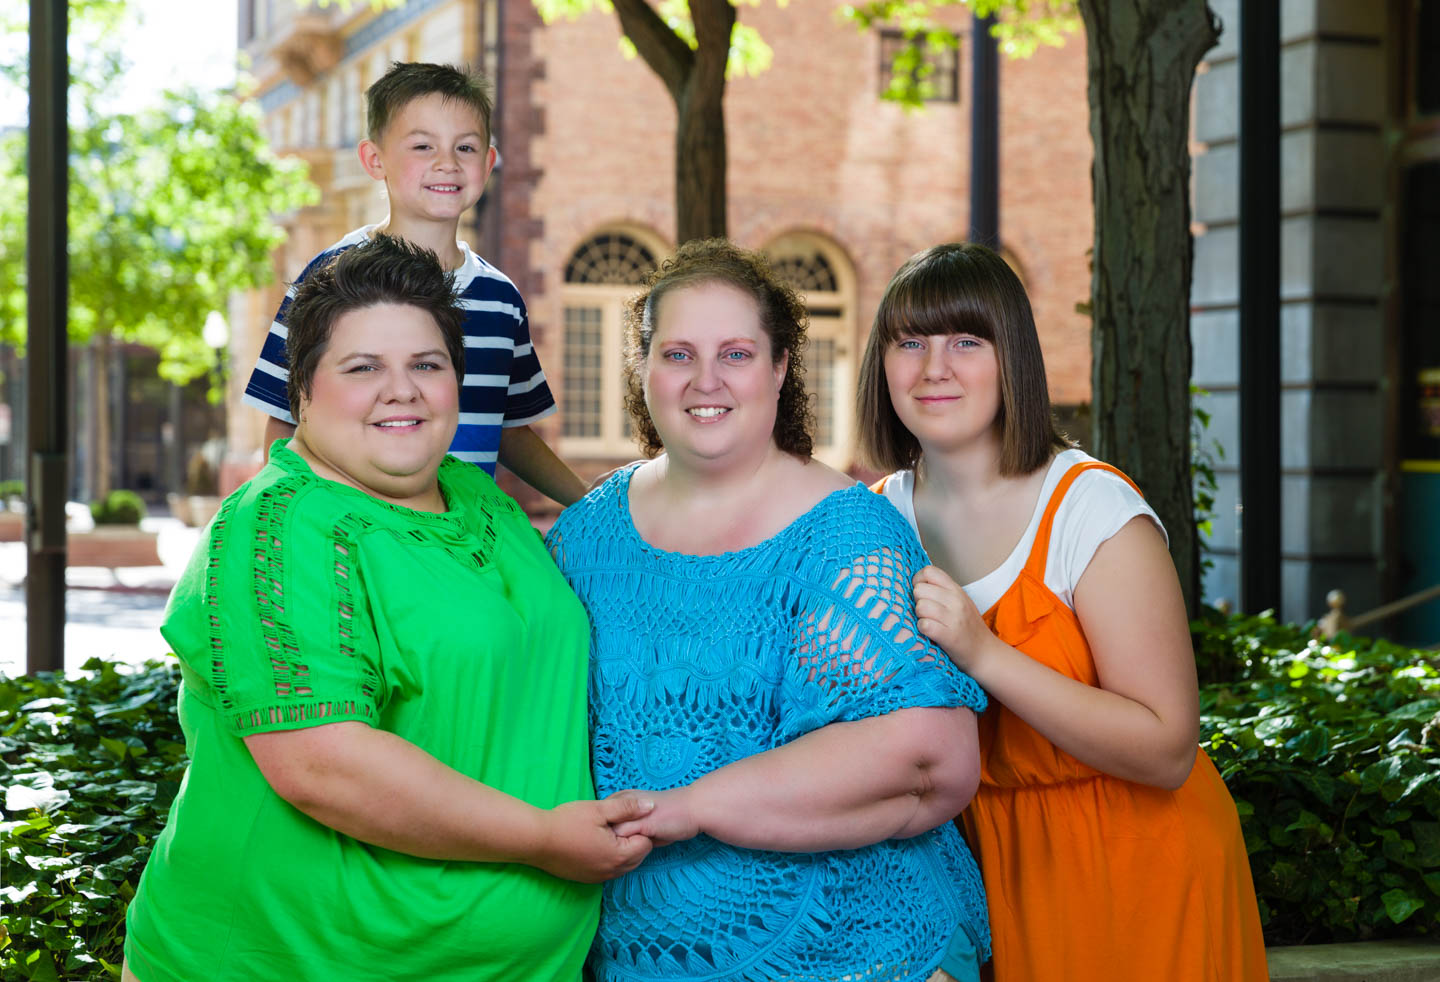 Celina, Jen, and their family for their engagement photos